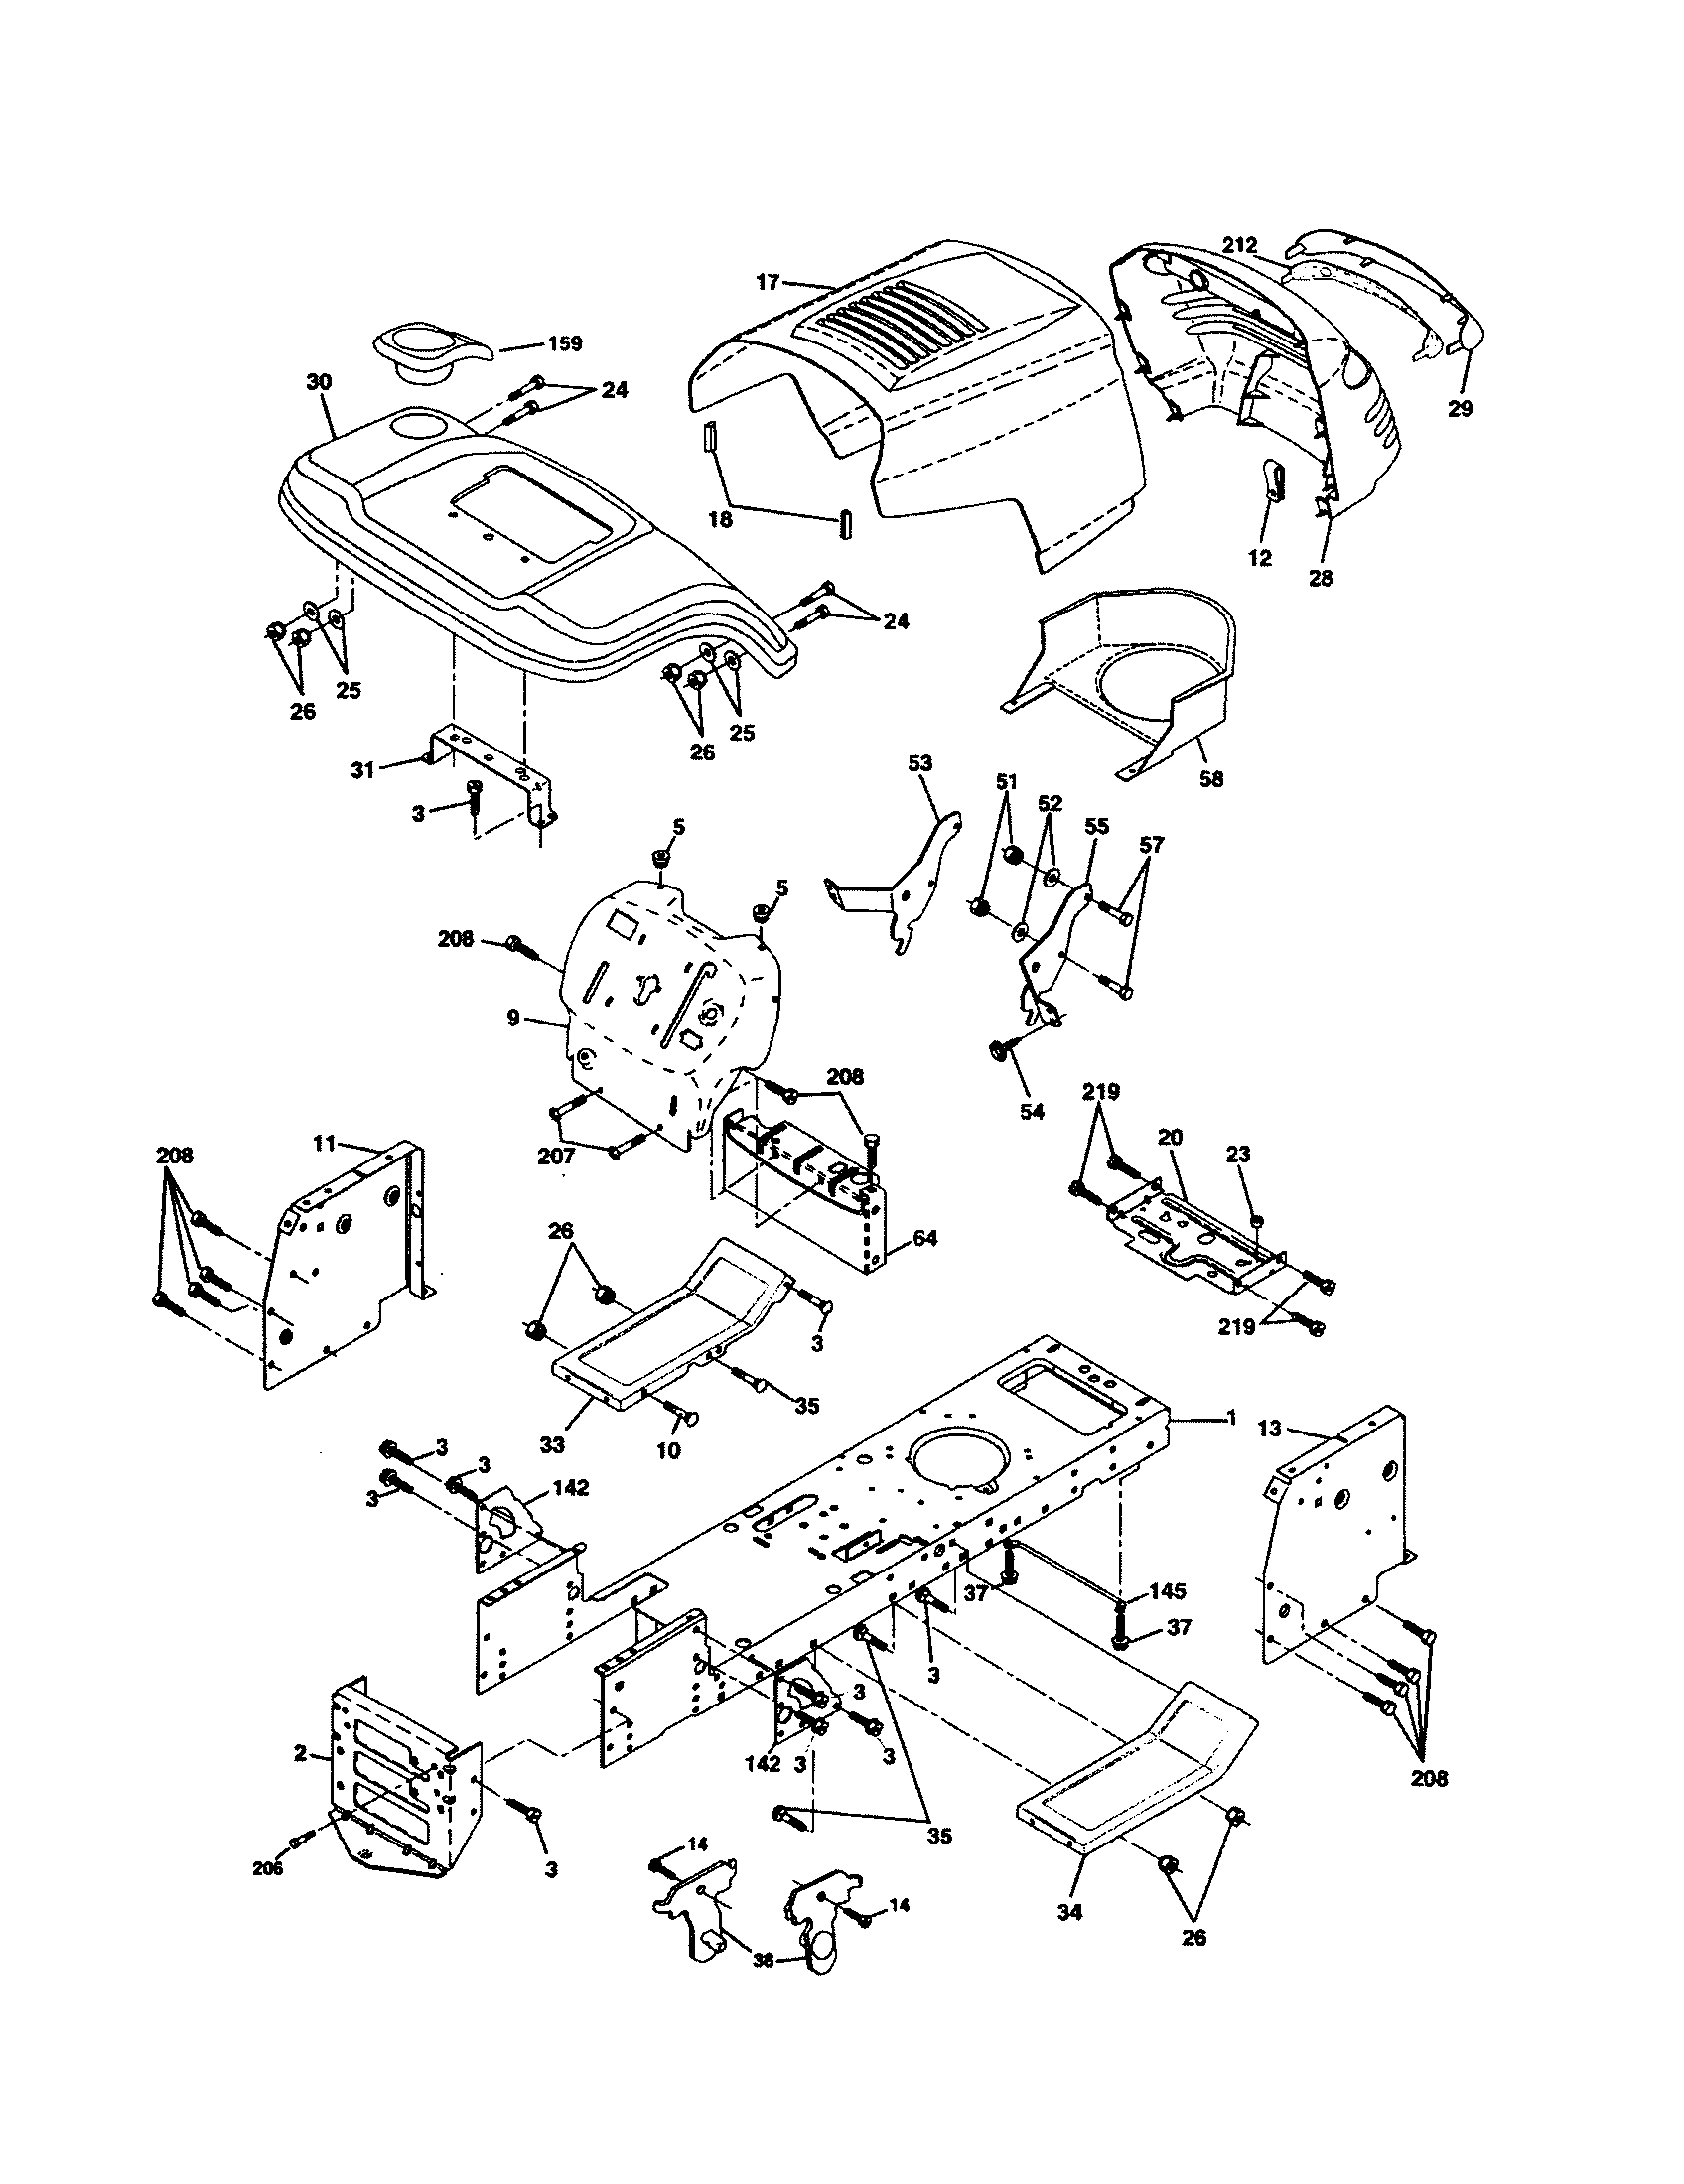 CHASSIS Diagram & Parts List for Model PPR20H42STC Poulan